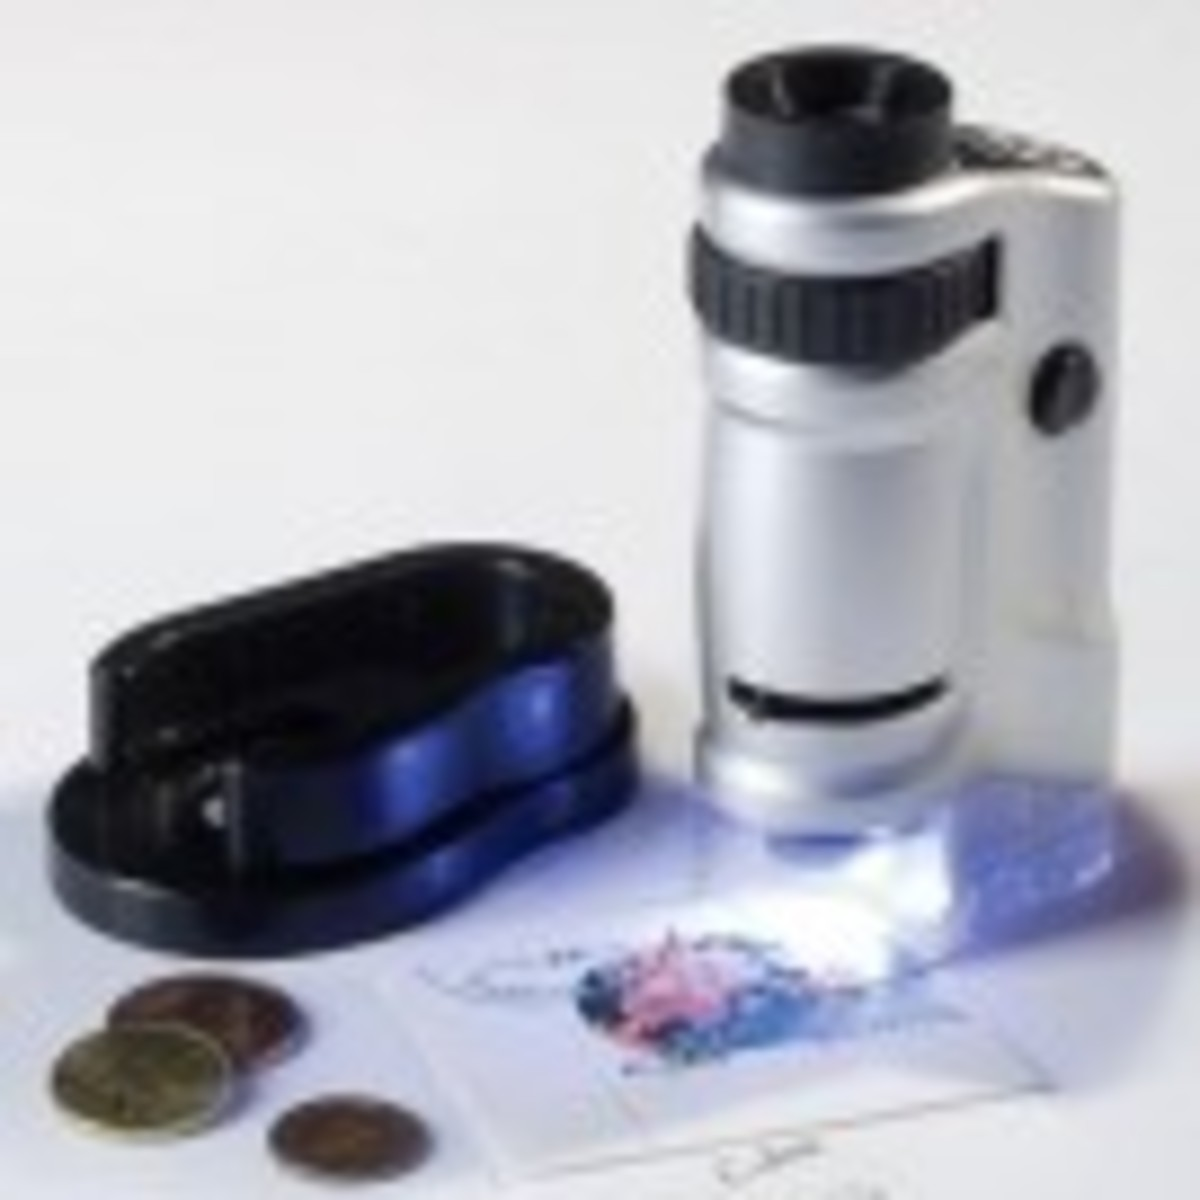 Zoom Pocket Microscope